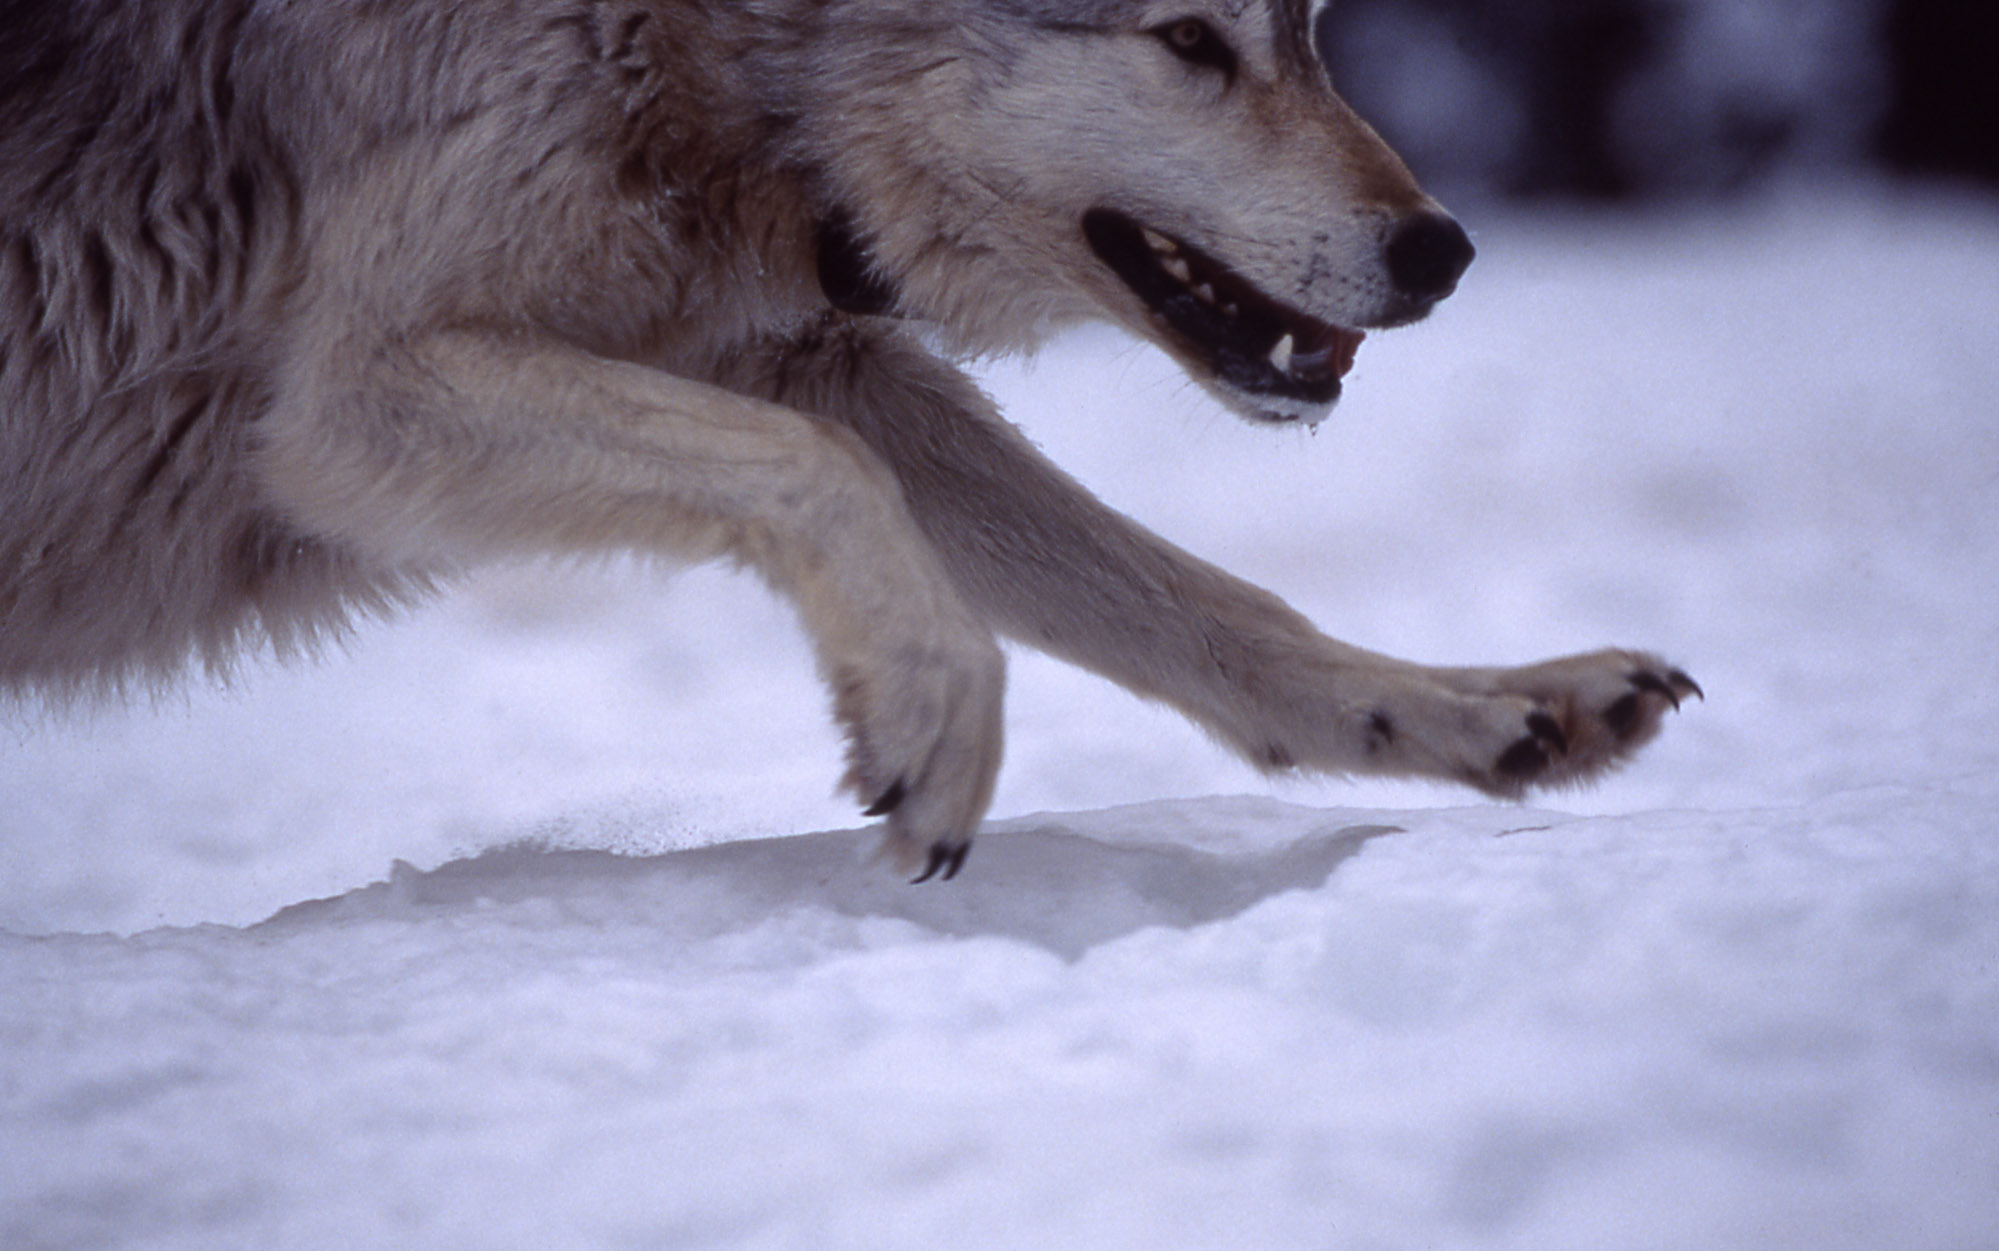 Member of the Rose Creek Pack (Barry O'Neil, NPS 1995)